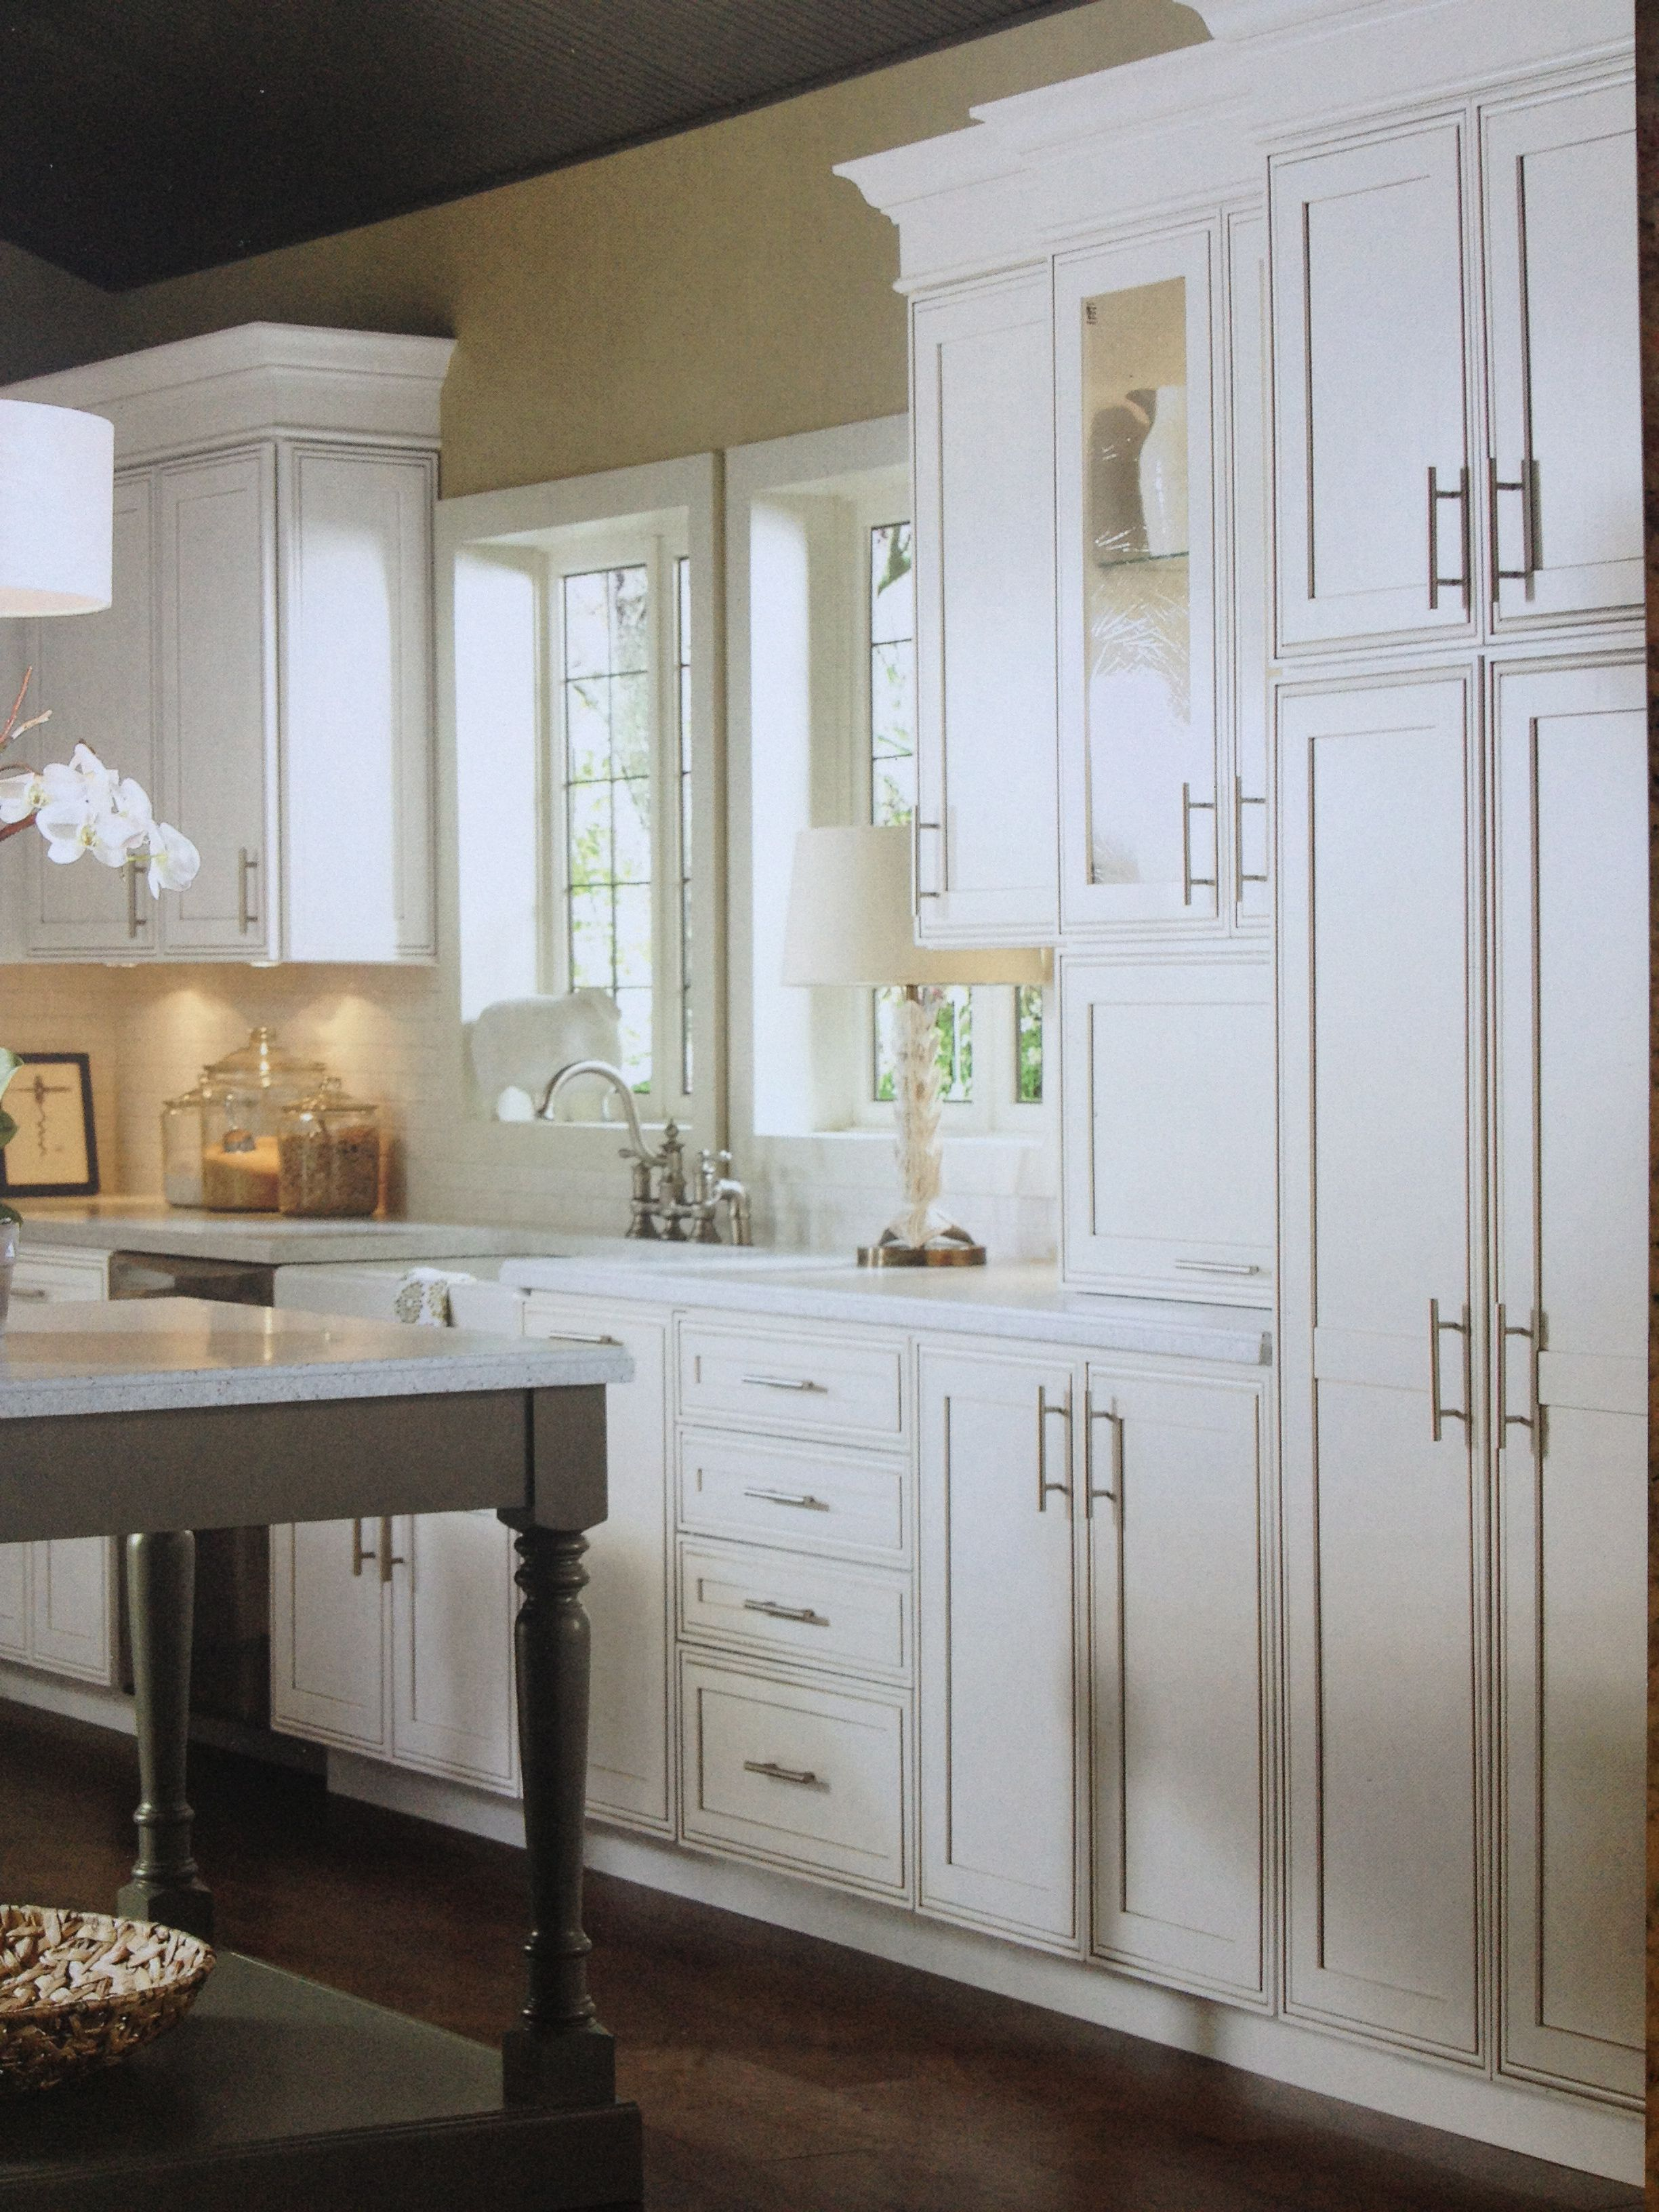 Marvelous Kitchen Design With Decora Cabinets Contemporary